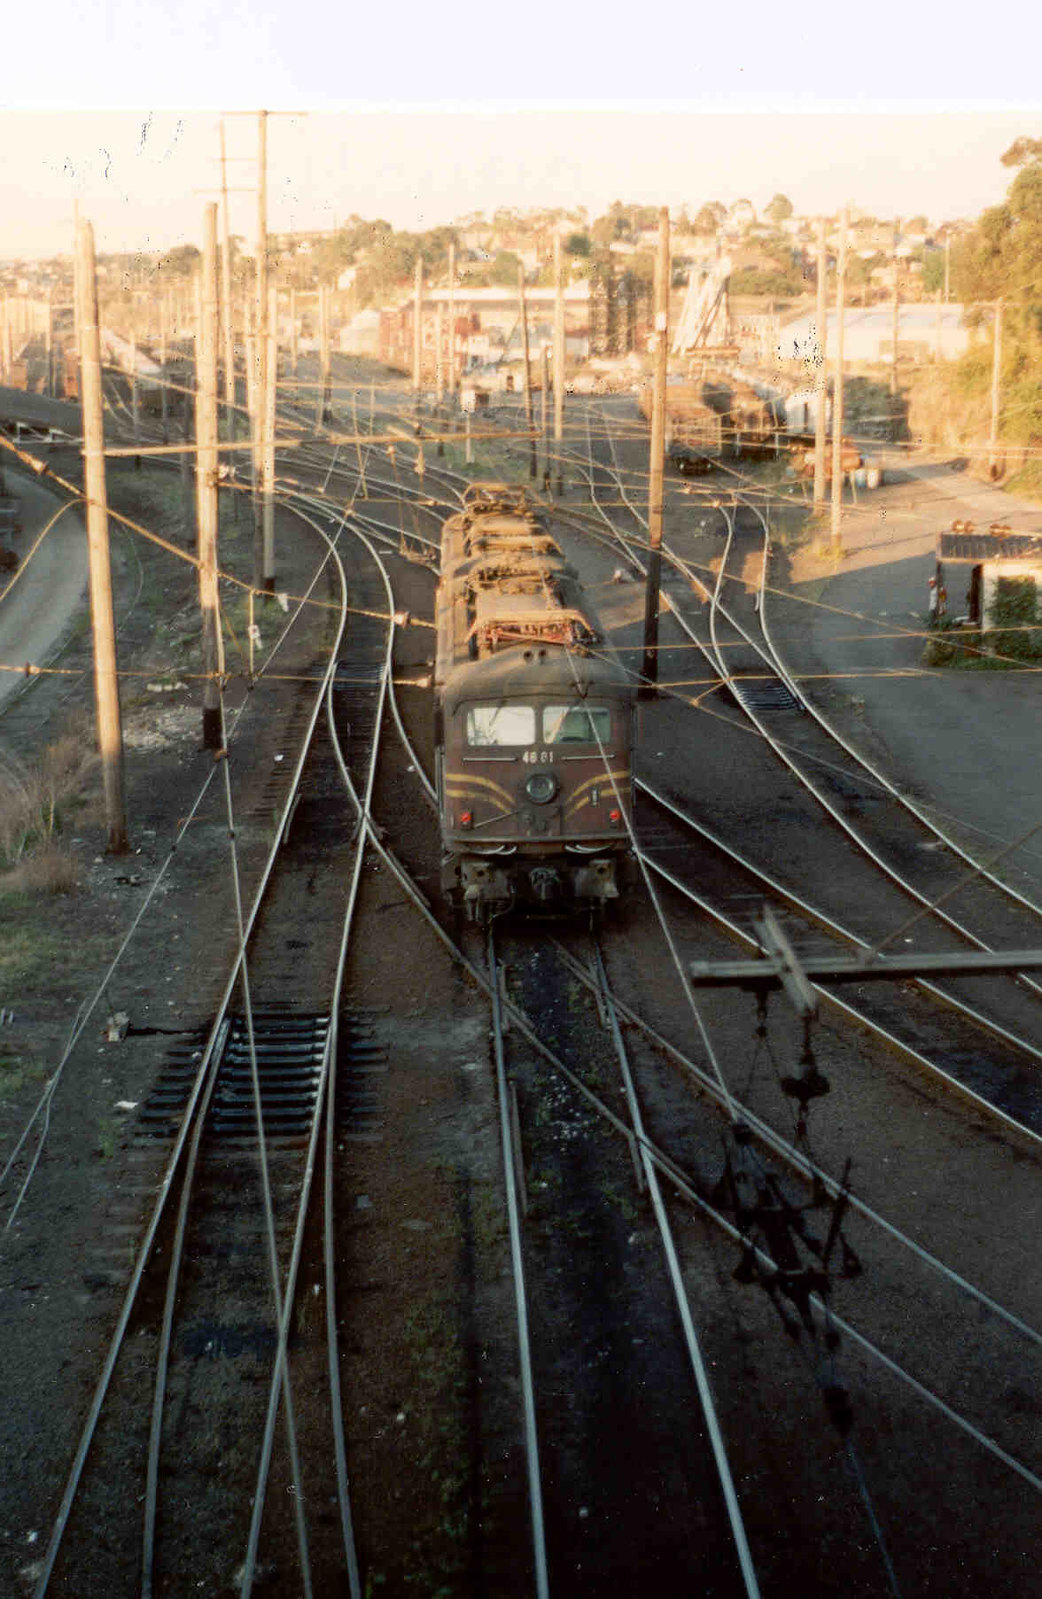 1990MP055V 4611 & 4601 at Rozelle 29-10-1990 by Don5617